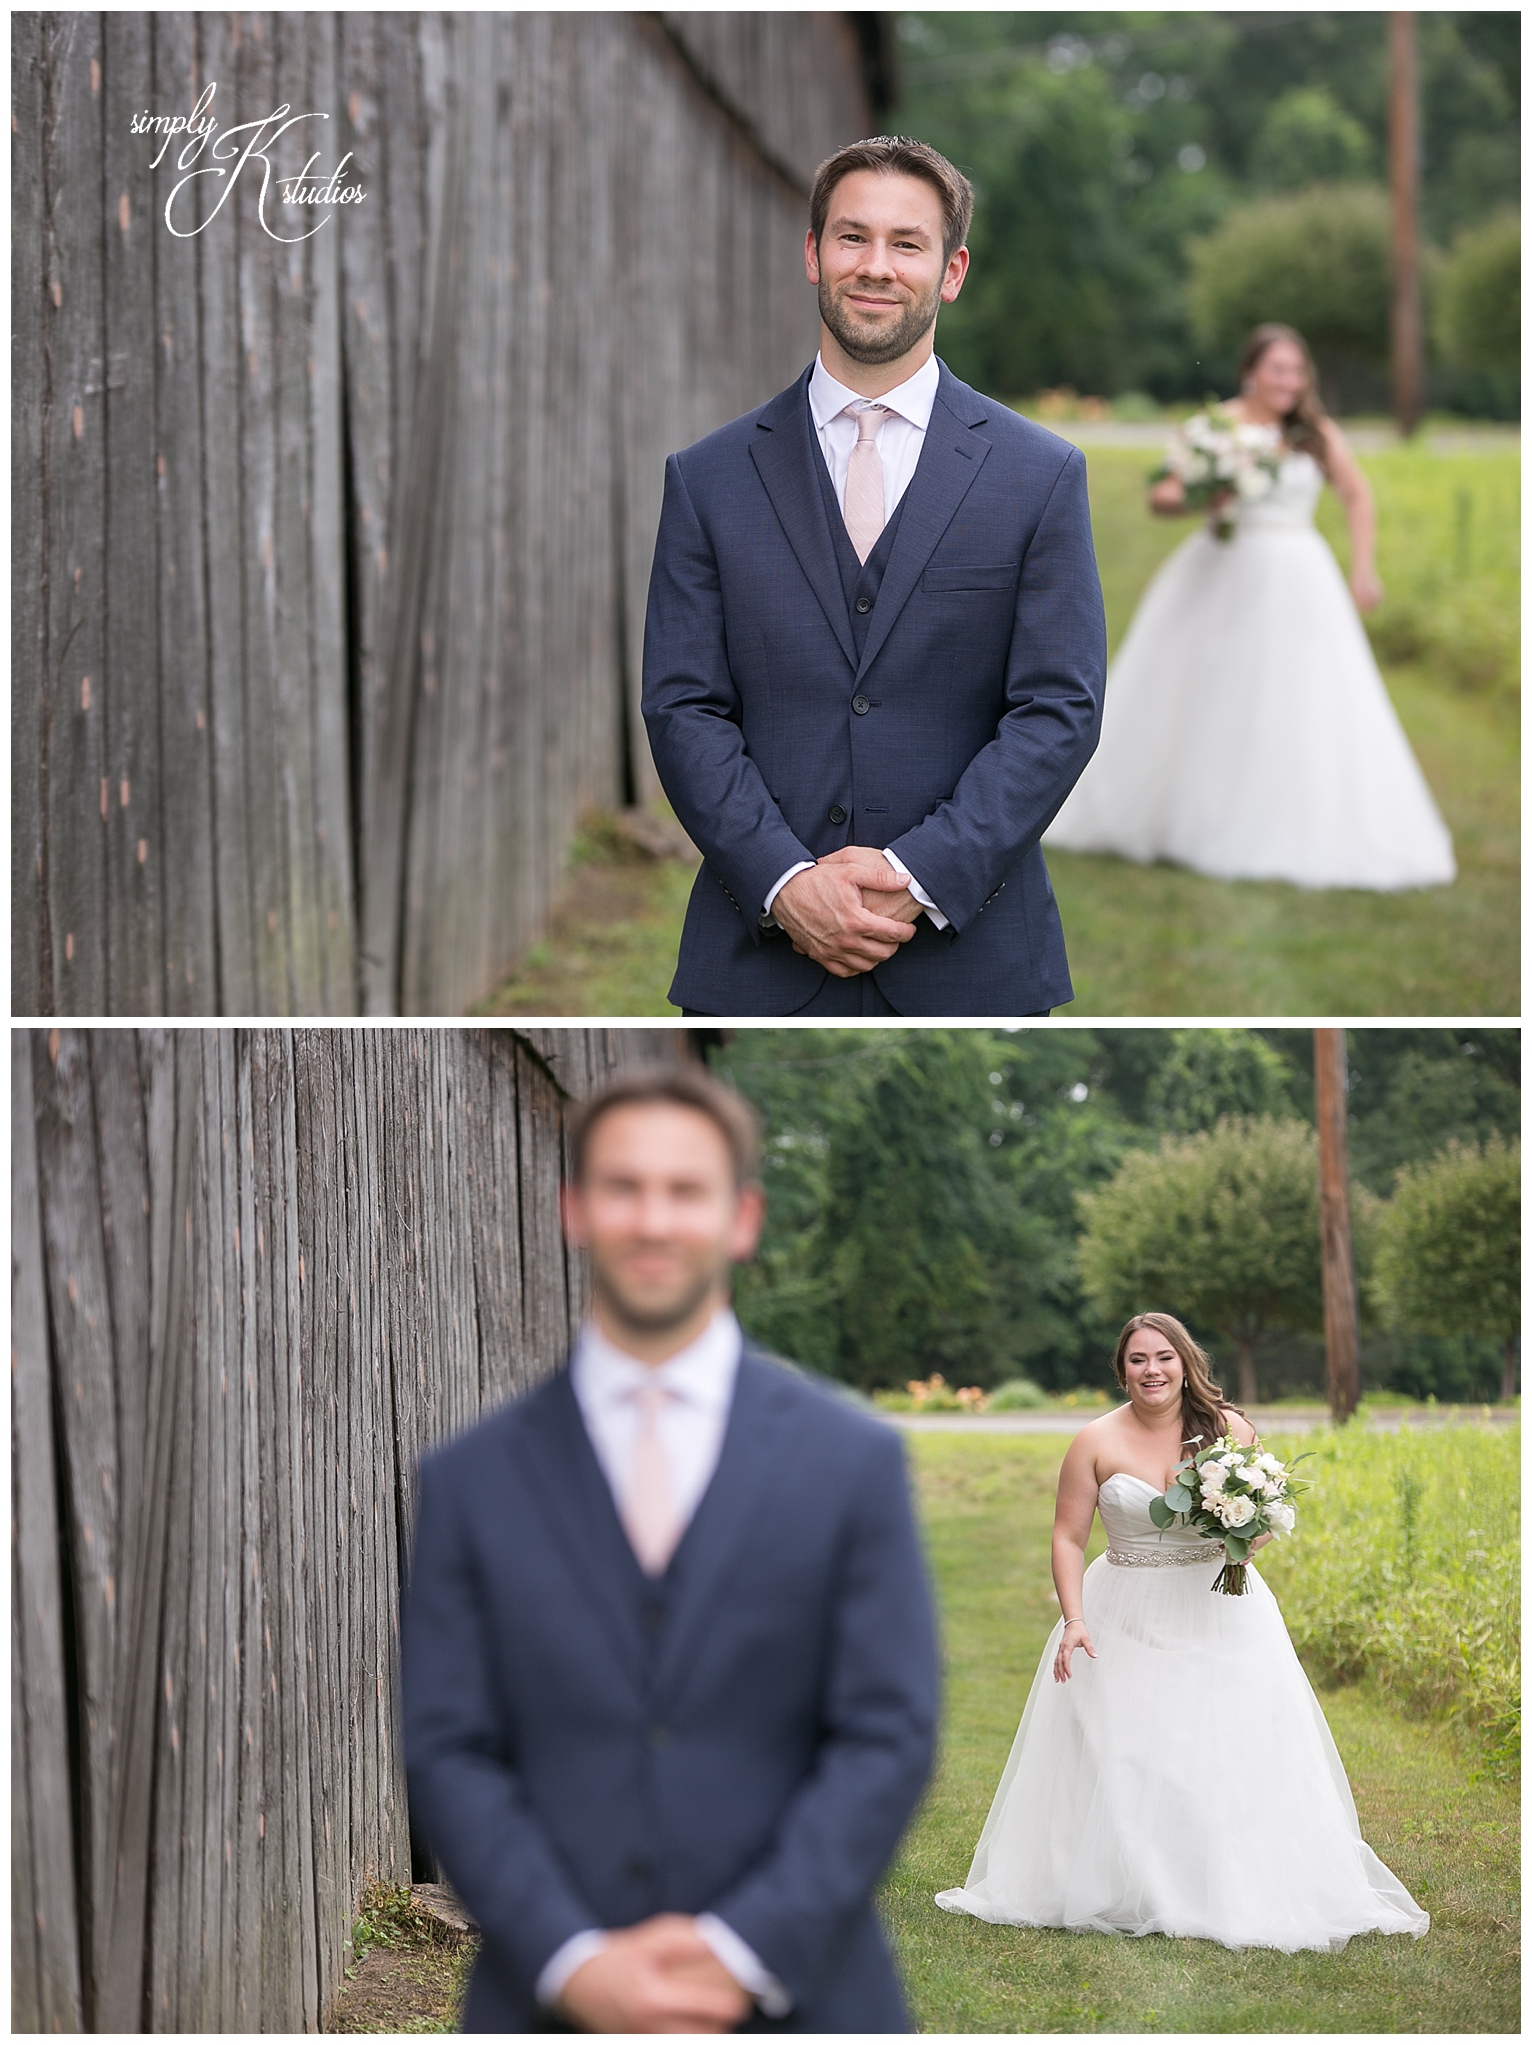 First Look Photos at a Rustic Wedding.jpg